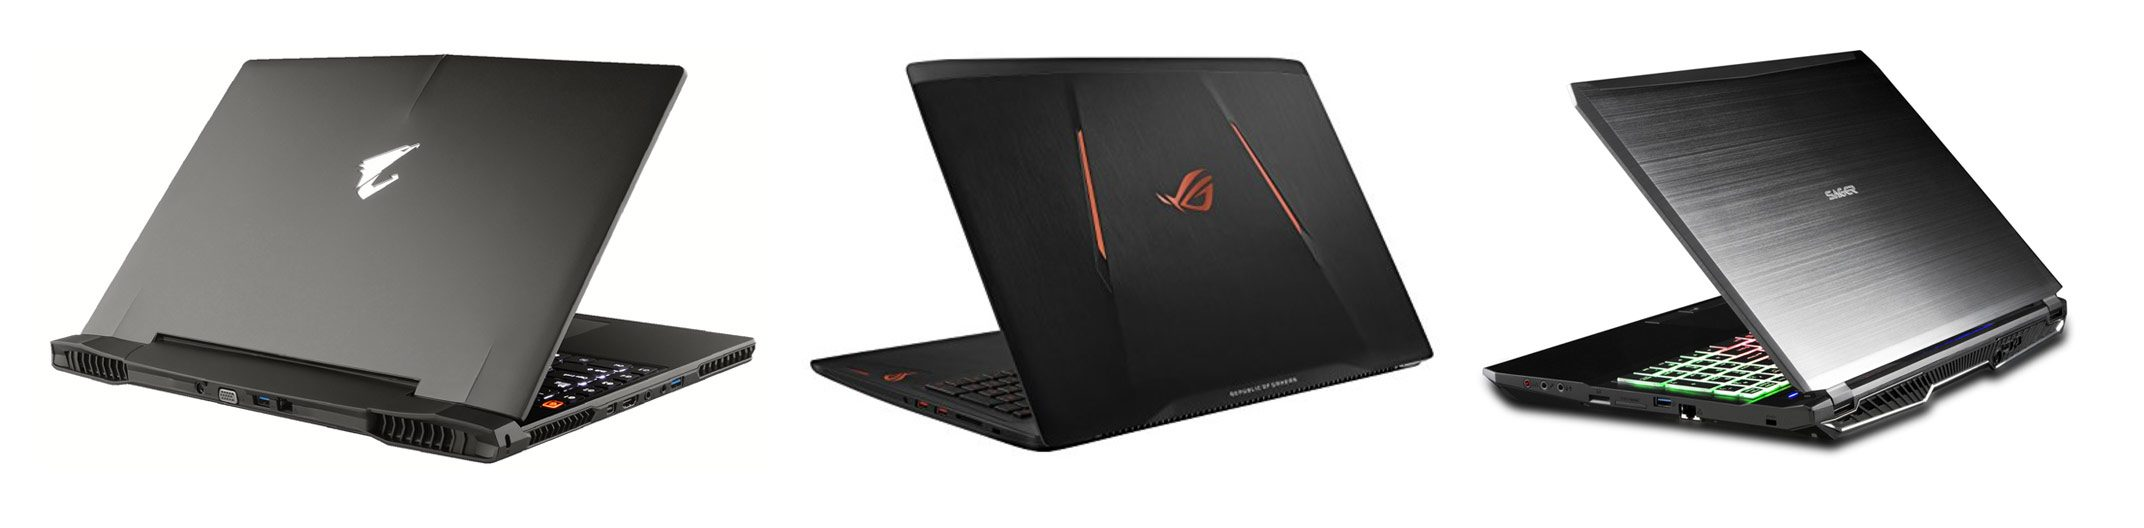 Aorus X5, Asus GL502VS and Sager NP8157 - 15-inch gaming laptop with GTX 1070 graphics